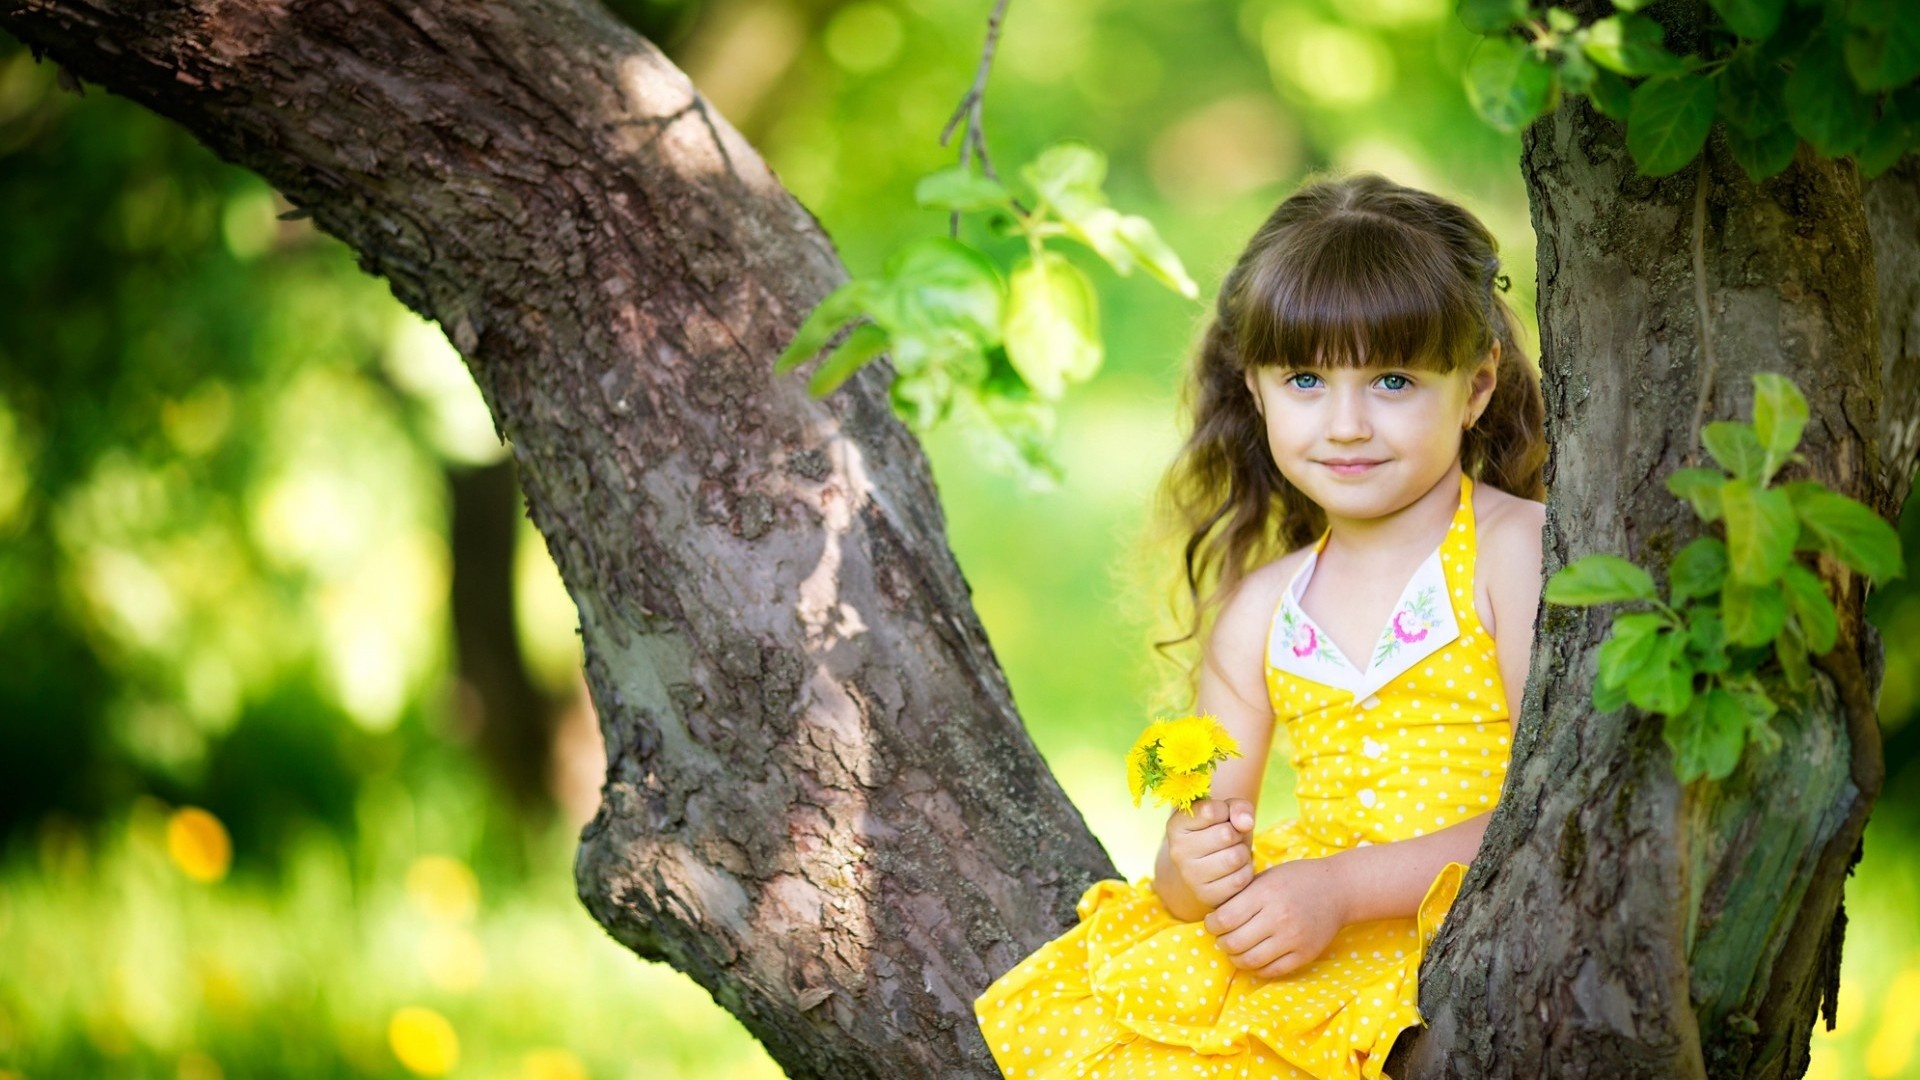 download Cute Baby Girl HD Wallpapers 2015 [1920x1080] for 1920x1080